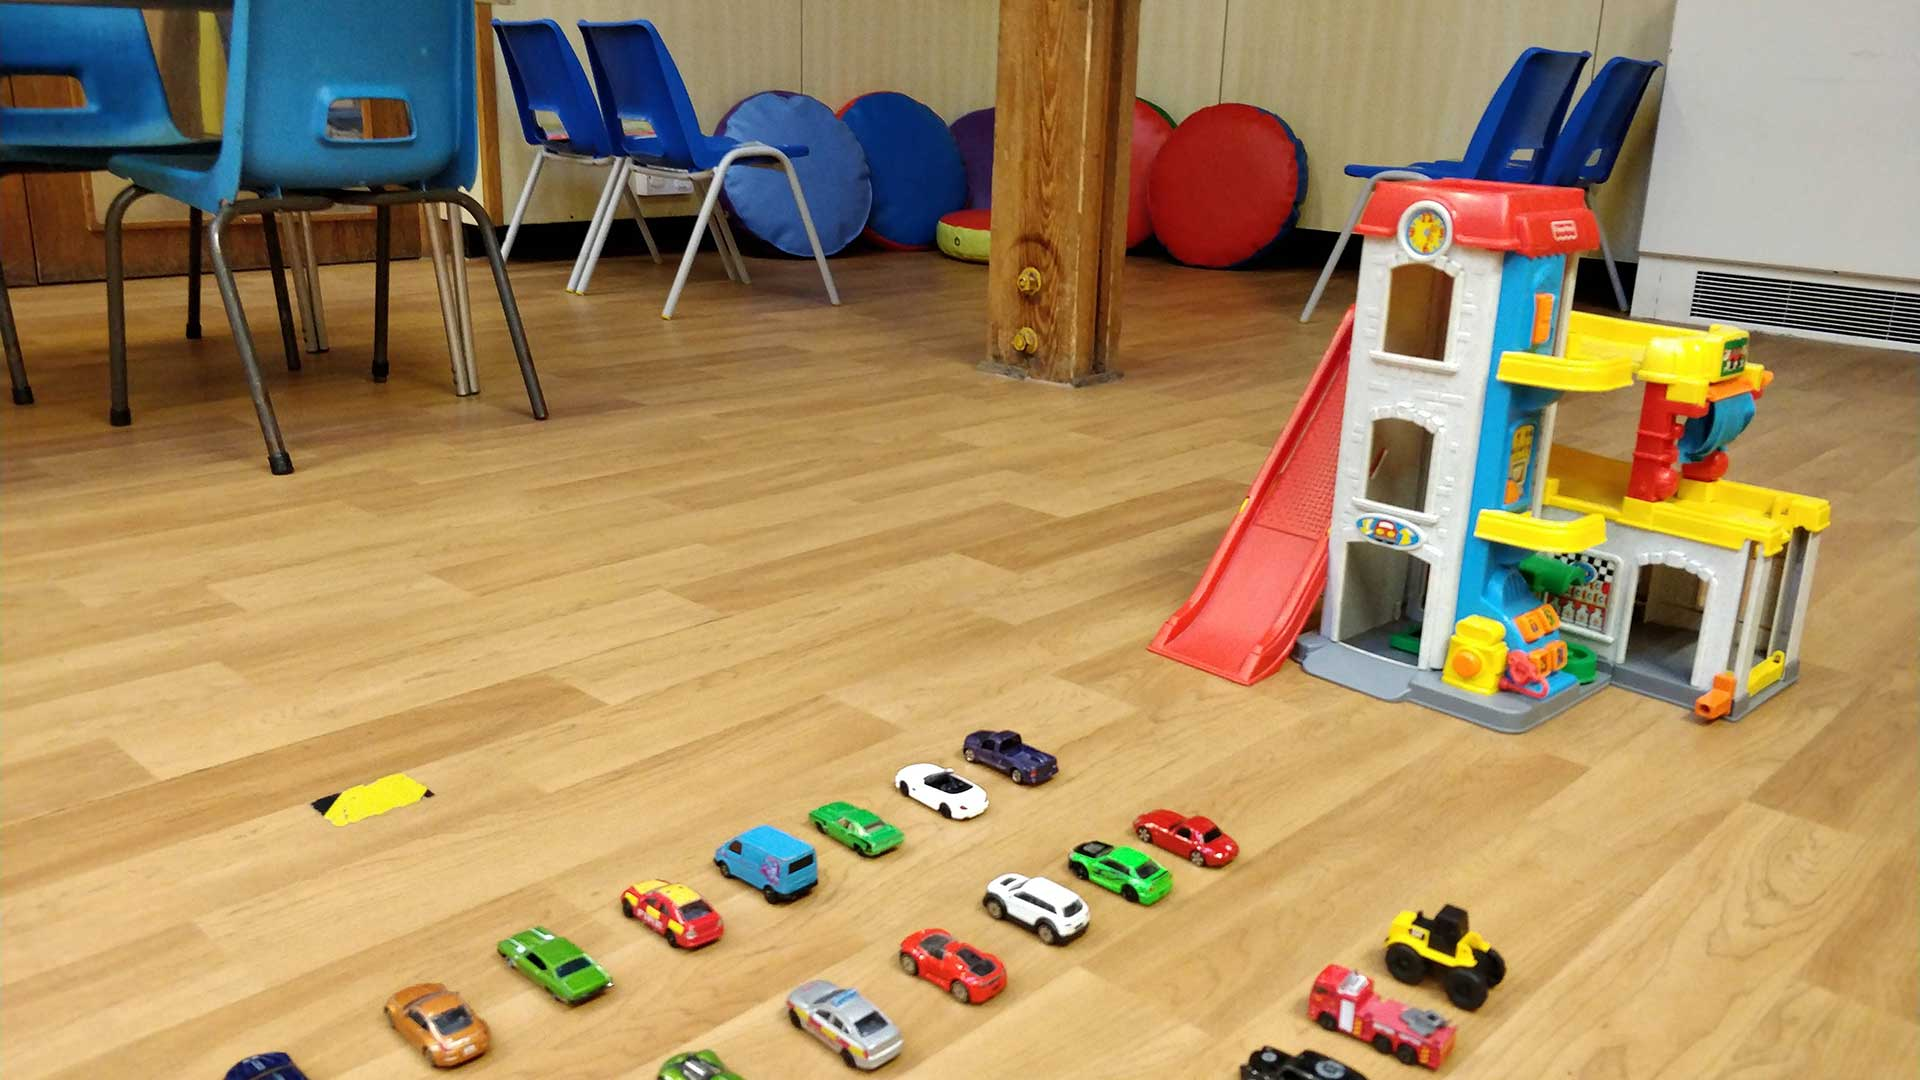 Cars and a play garage laid out on the floor at Rottingdean Whiteway Pre-School